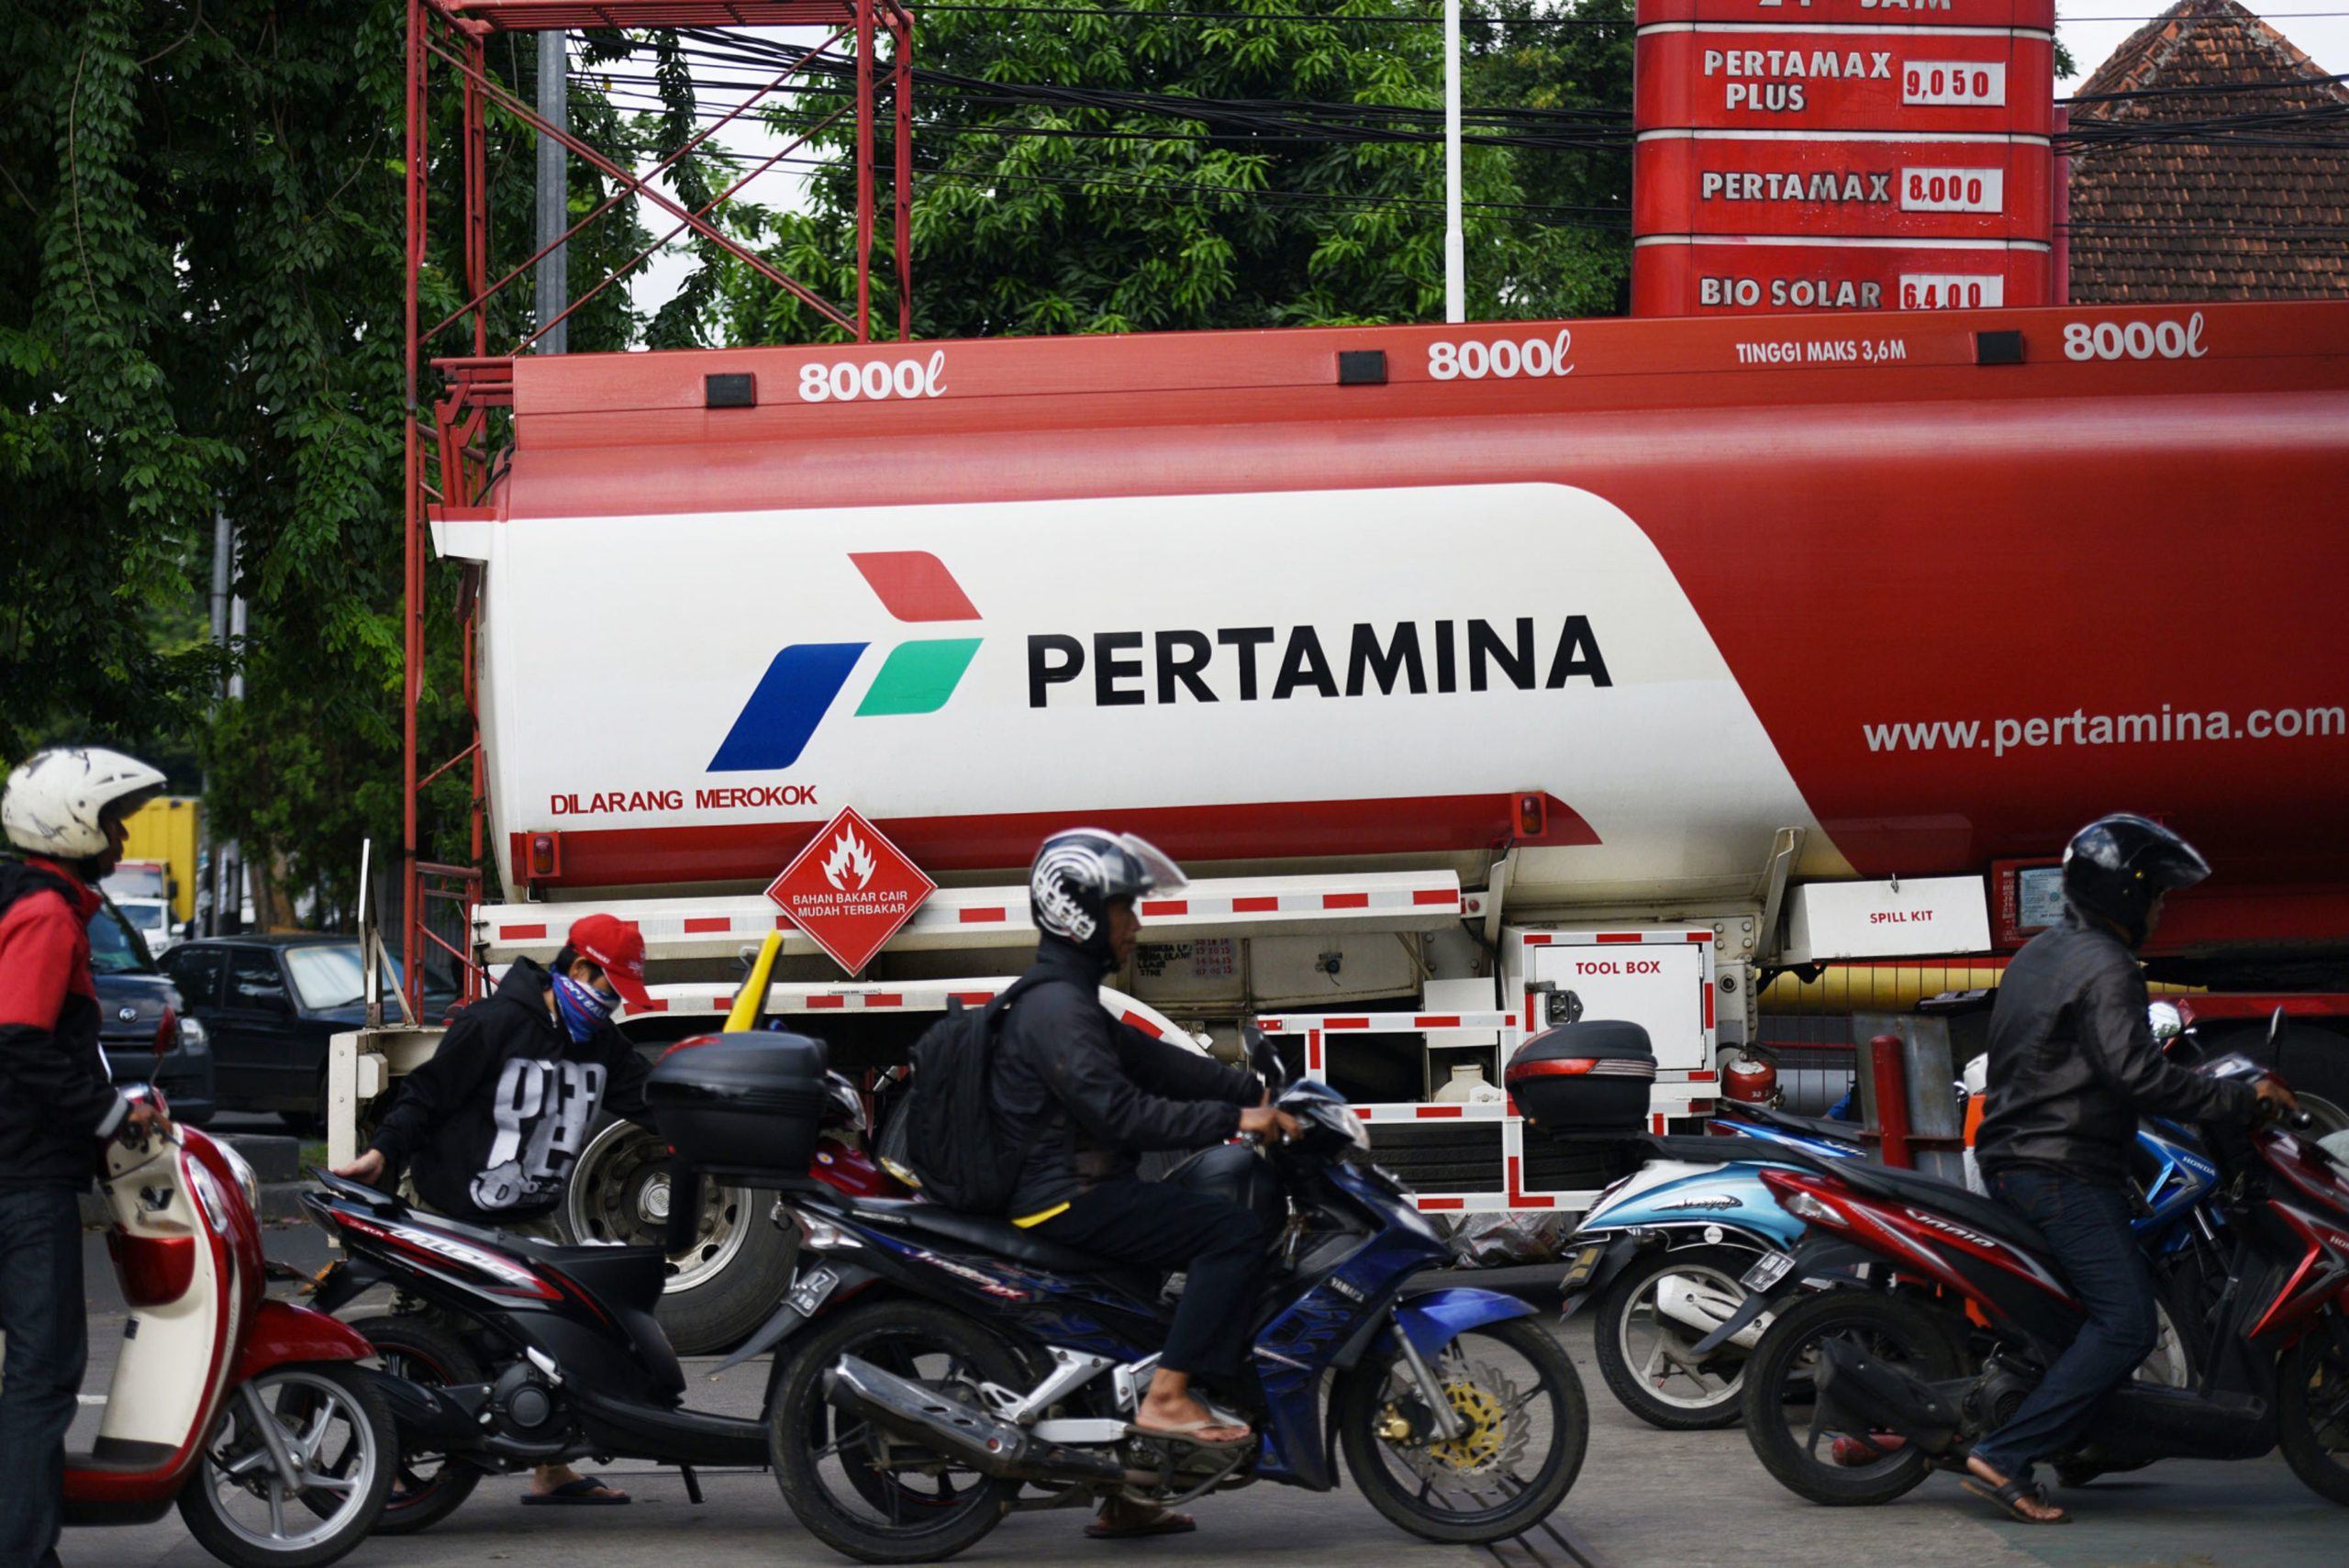 Motorcyclists wait in line in front of a tanker truck at a PT Pertamina gas station in Jakarta, Indonesia, on Wednesday, Jan. 21, 2015. Photographer: Dimas Ardian/Bloomberg